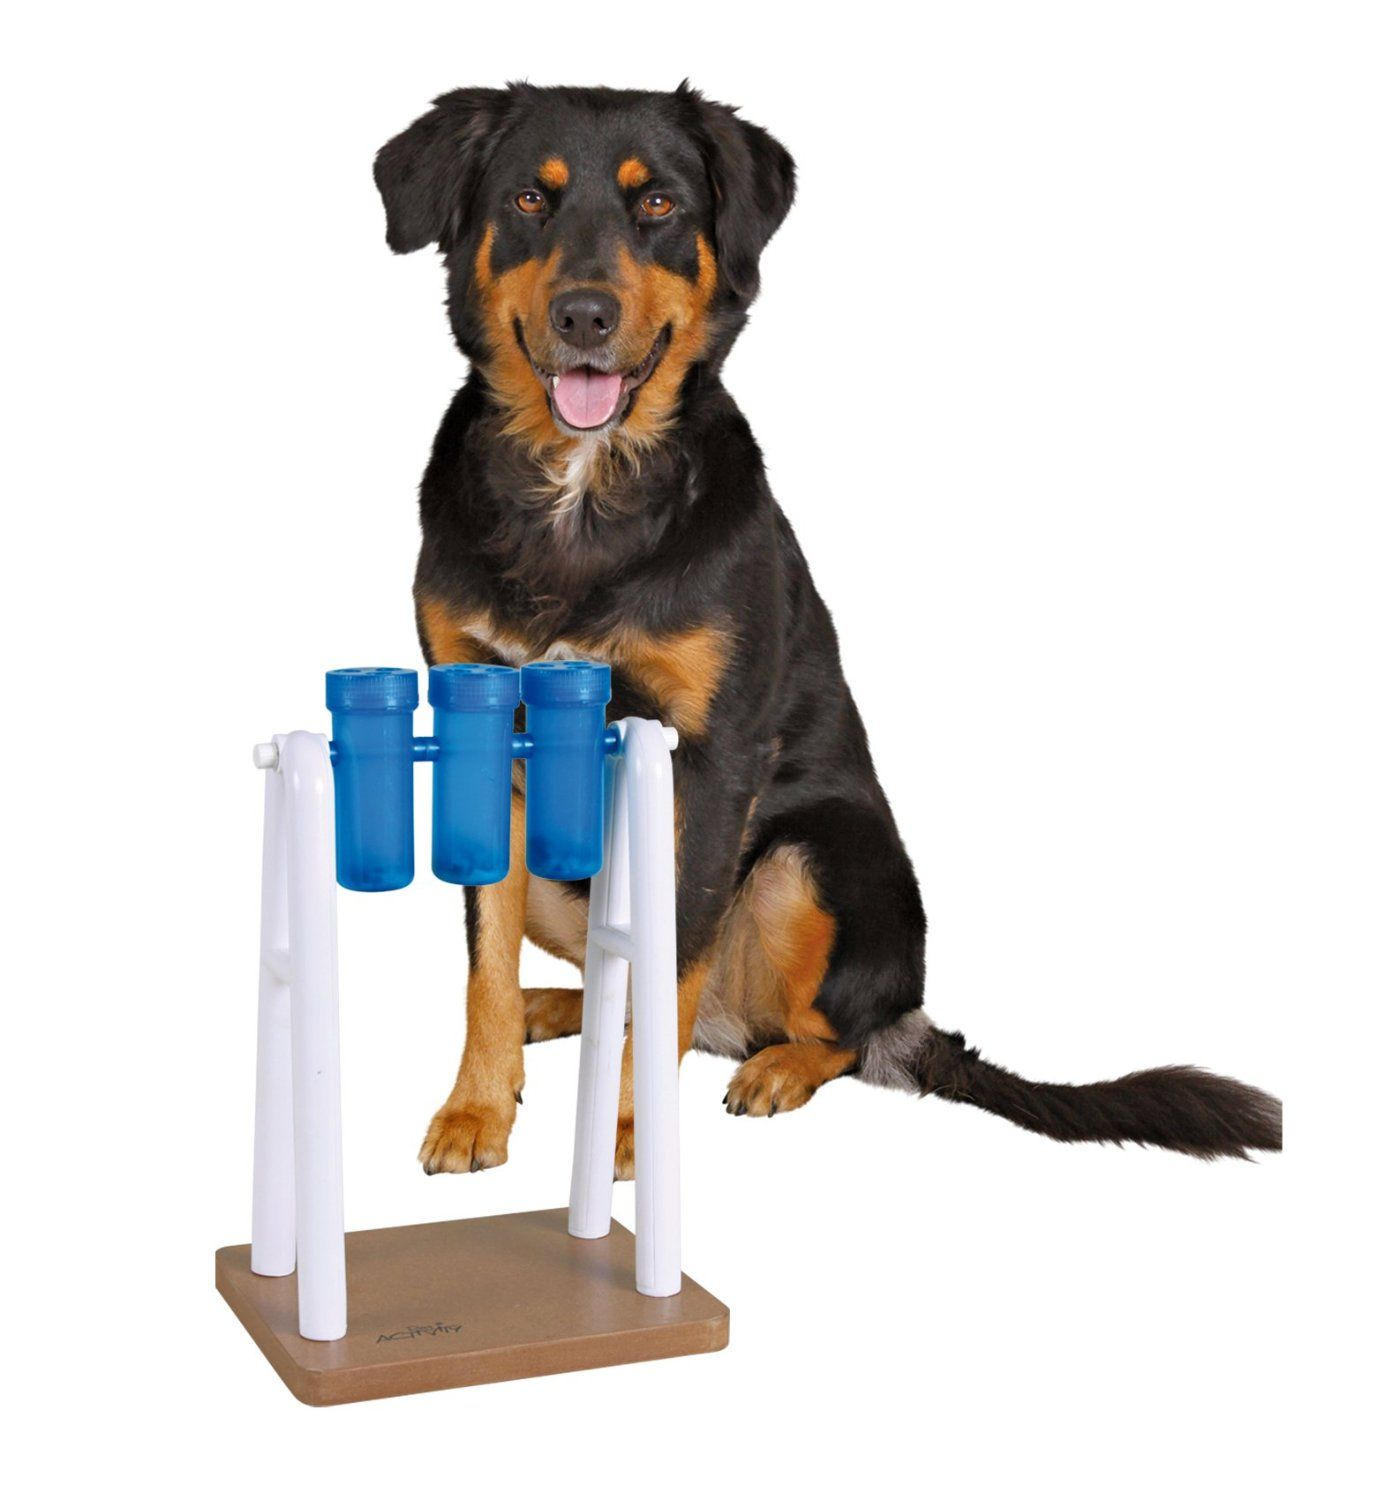 Amazon Com Trixie Mad Scientist For Dogs Level 2 Pet Agility Products Pet Supplies Durable Dog Toys Kong Dog Toys Interactive Dog Toys